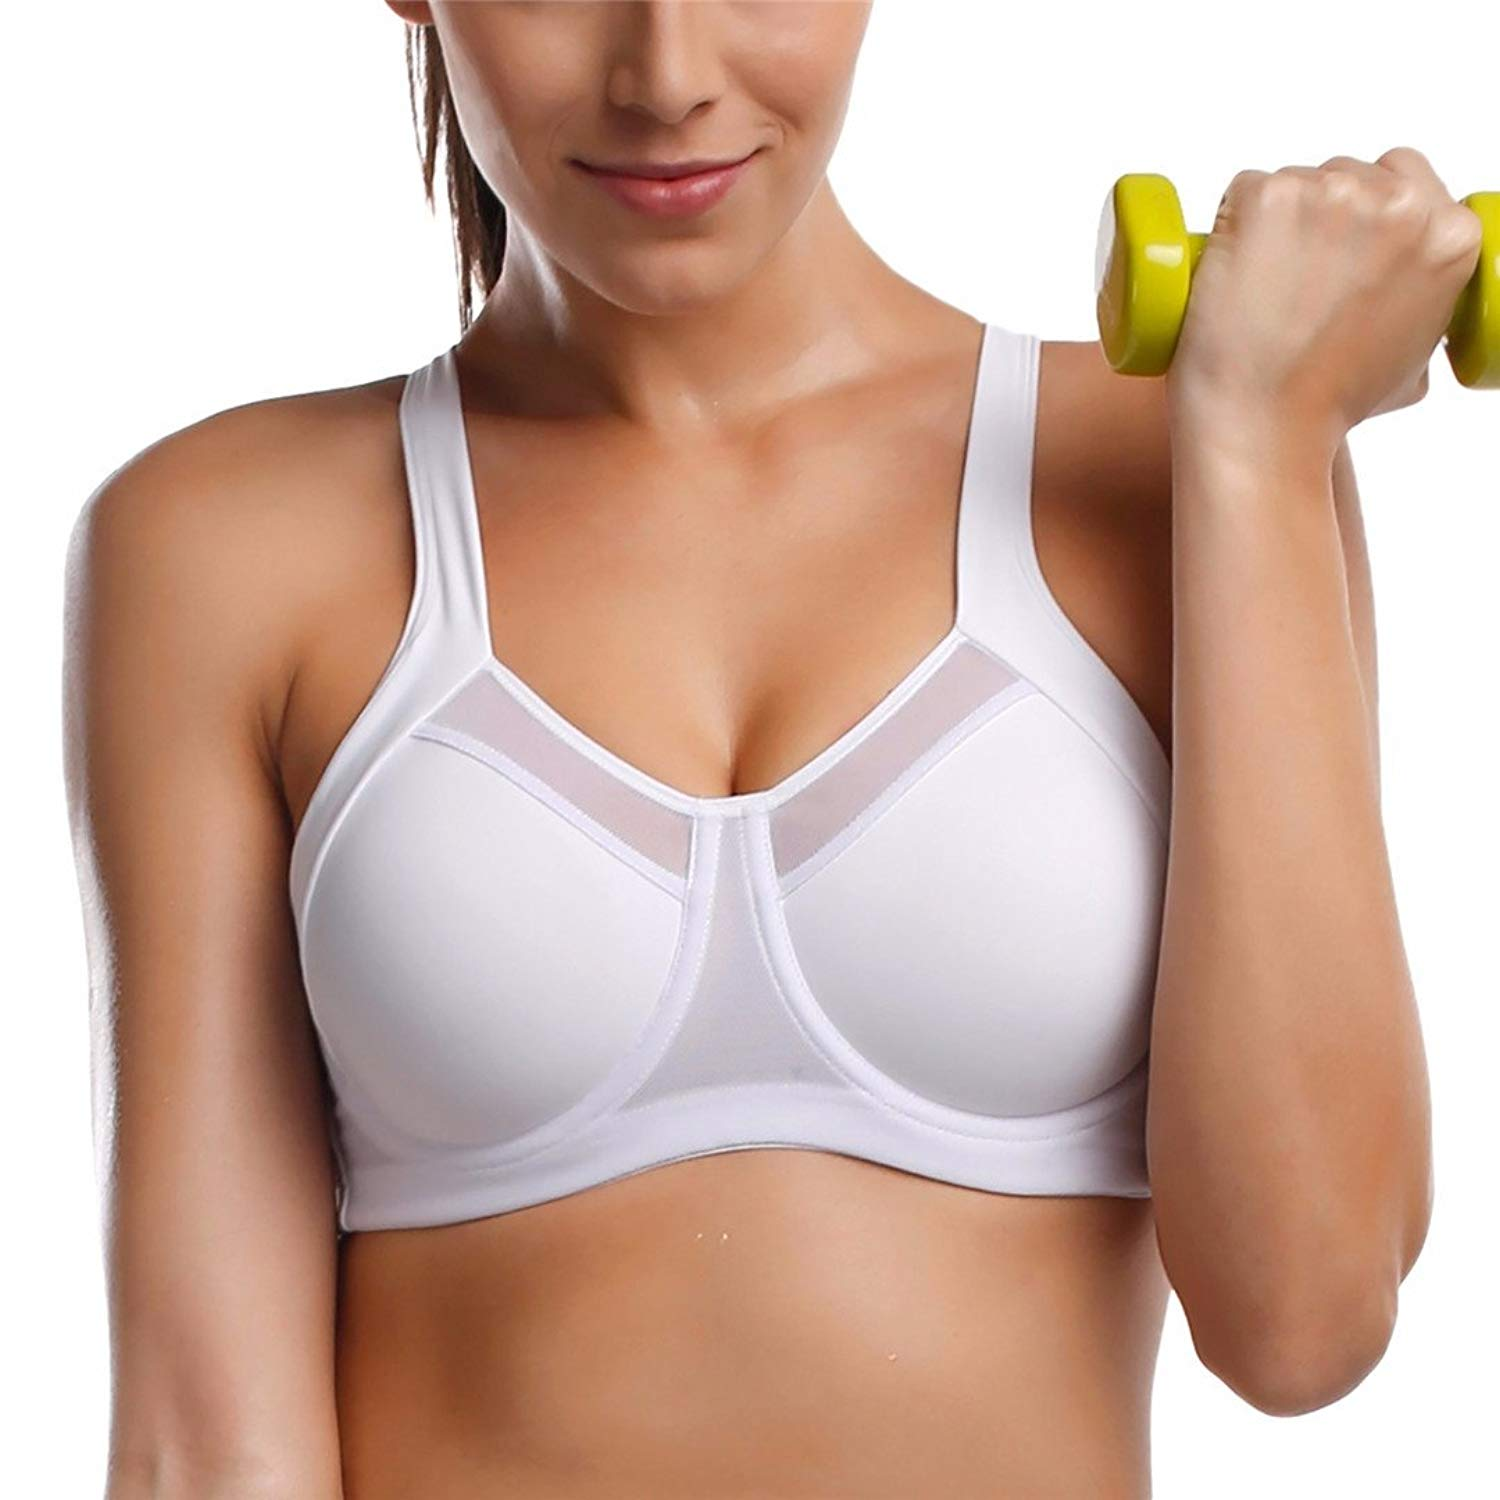 fec83b1b293e0 Get Quotations · Women s High Impact Underwire Non Padded Powerback Support  Sports Bra